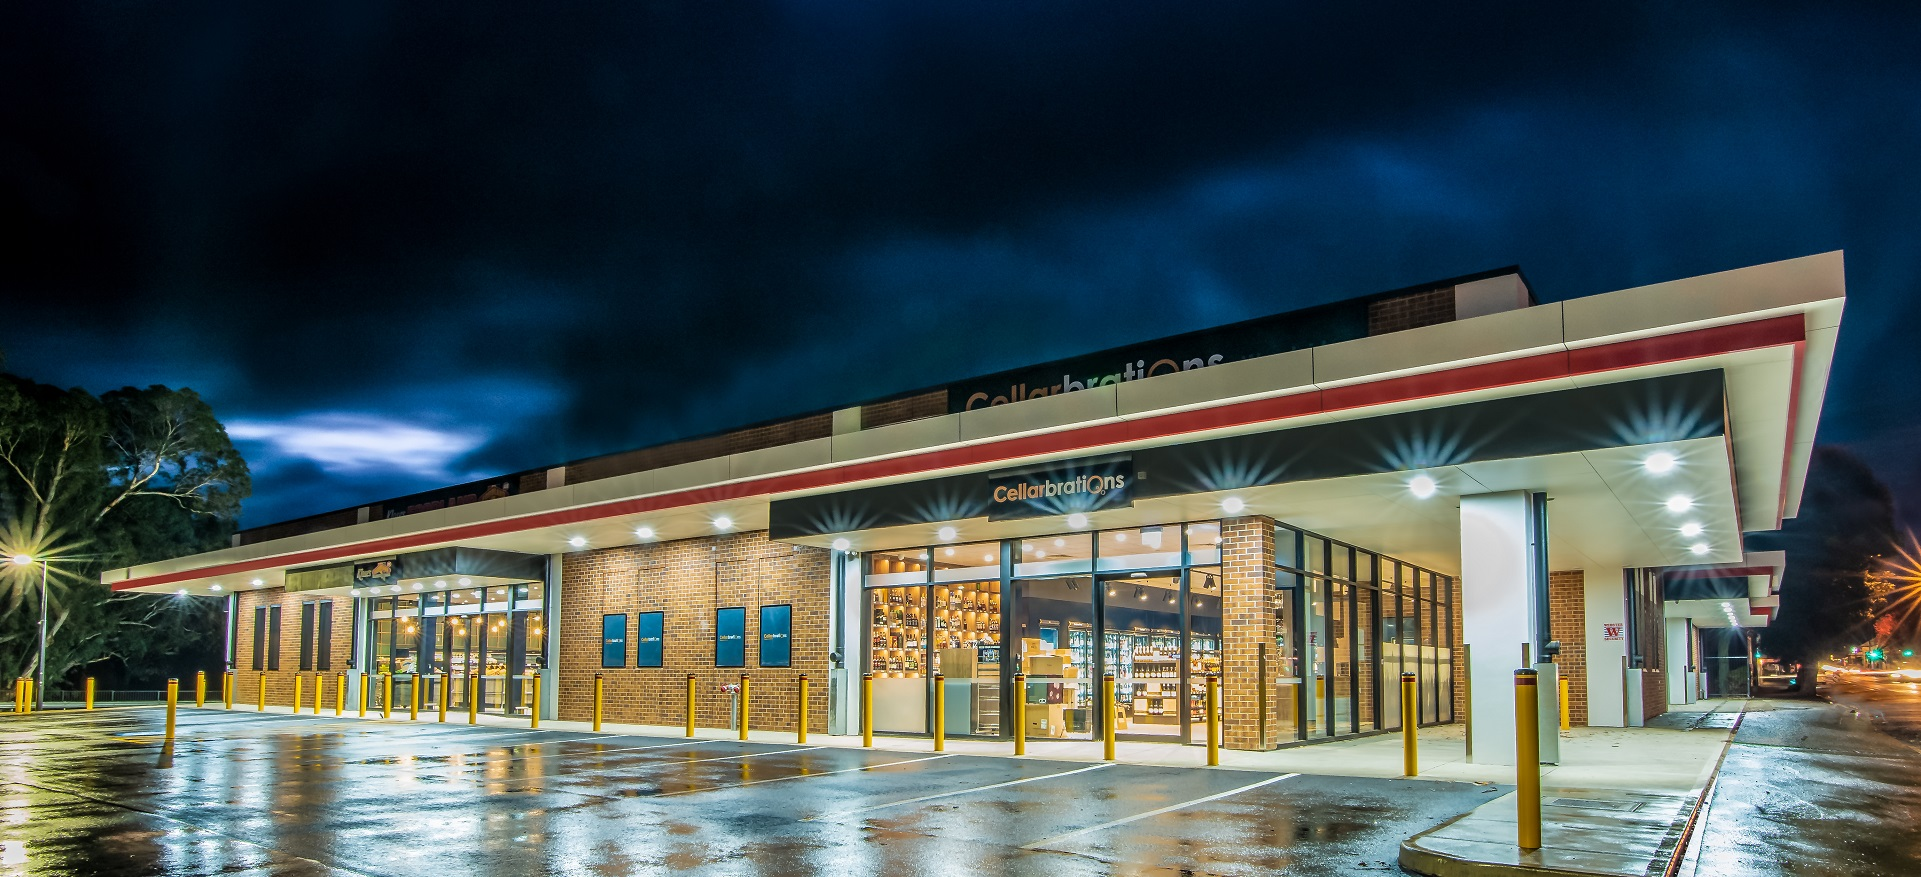 Exterior of supermarket lit up at night